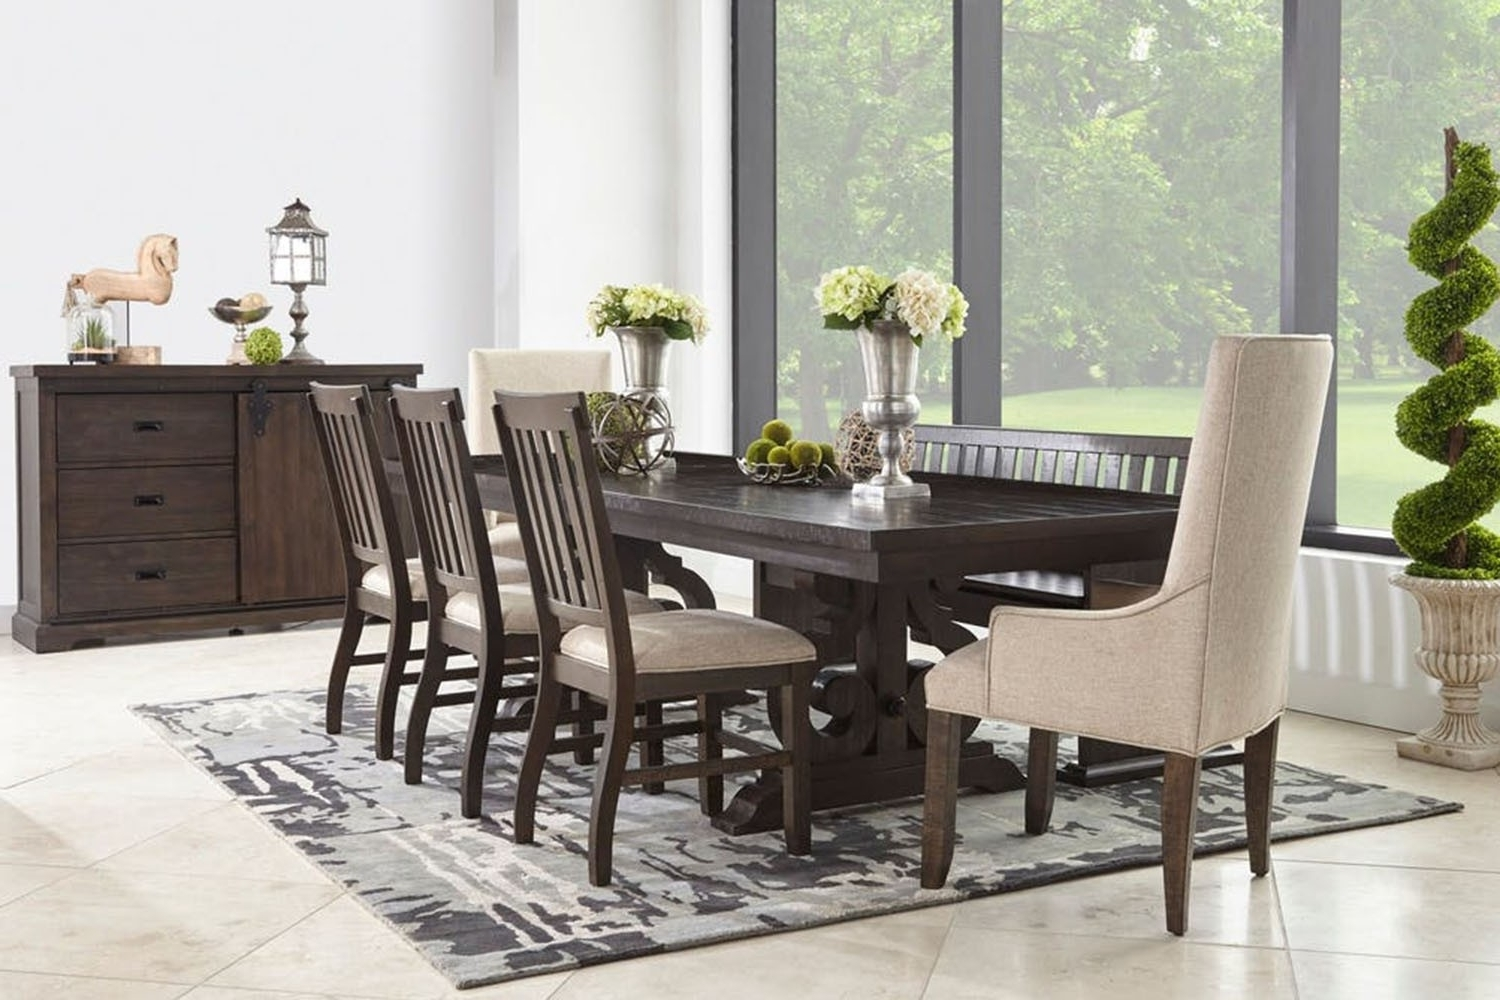 Save Mor Online And In Store With Most Up To Date Stone Dining Tables (View 6 of 25)